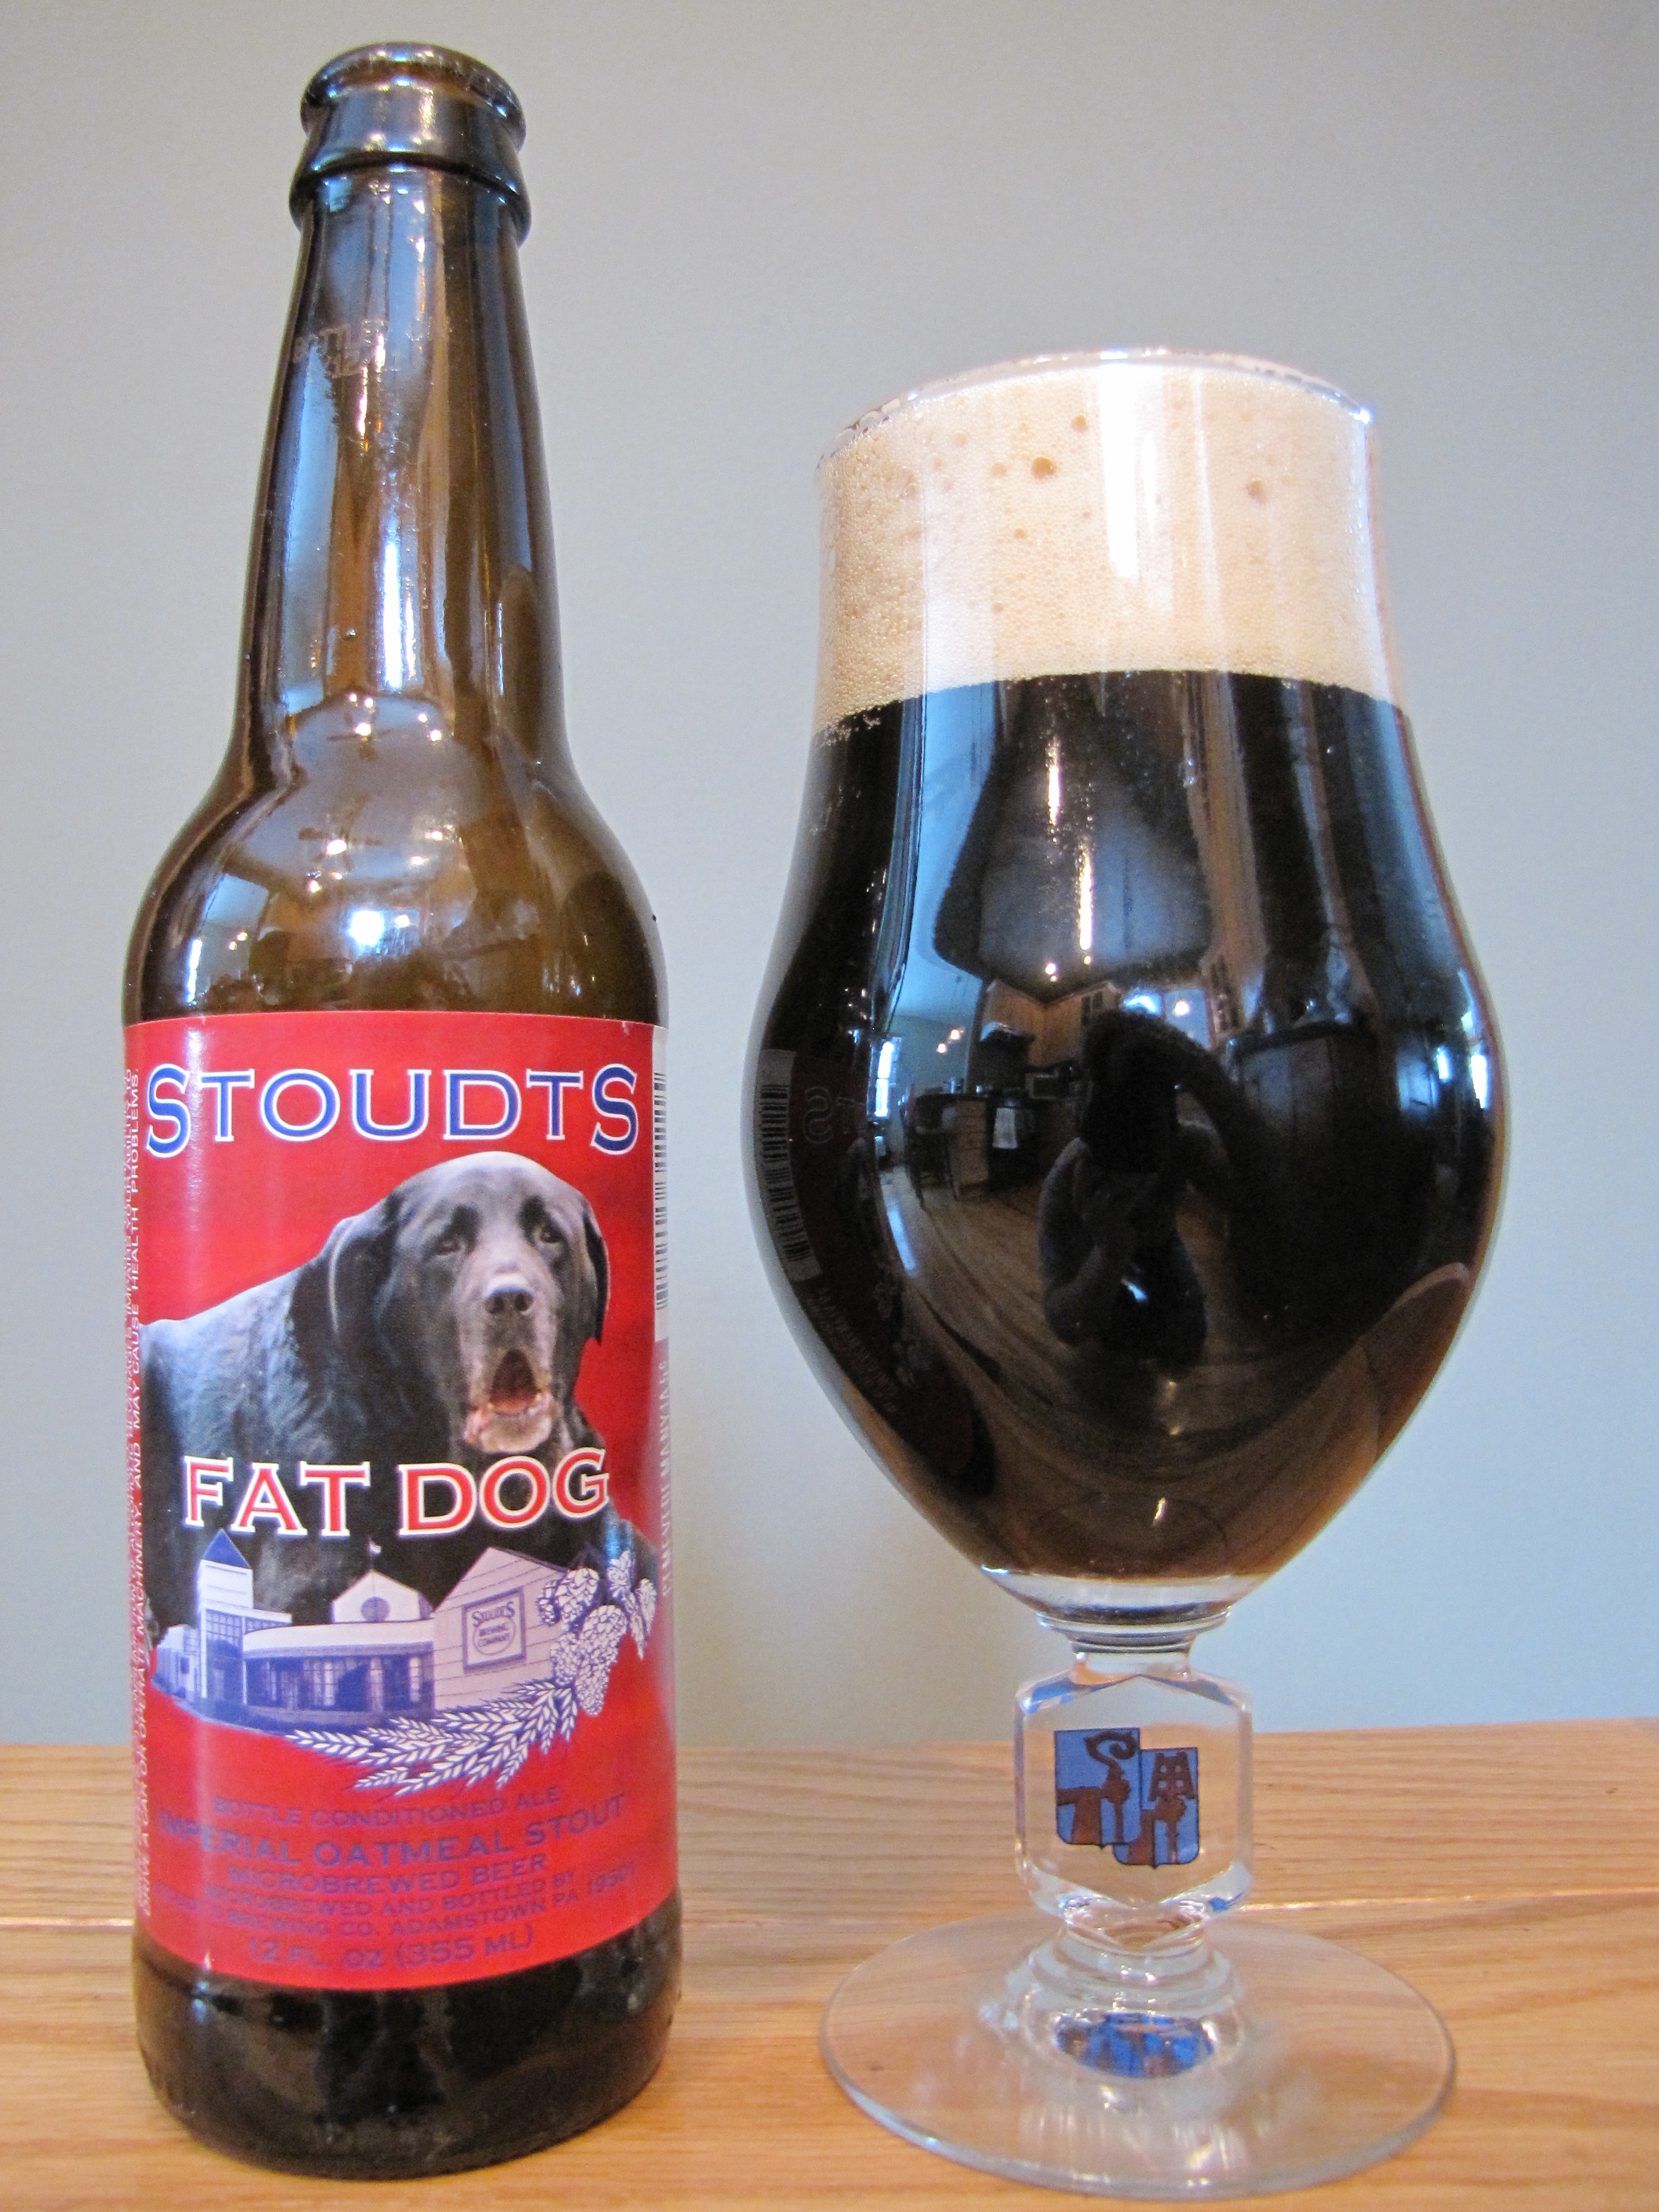 Stoudt's Fat Dog Imperial Oatmeal Stout